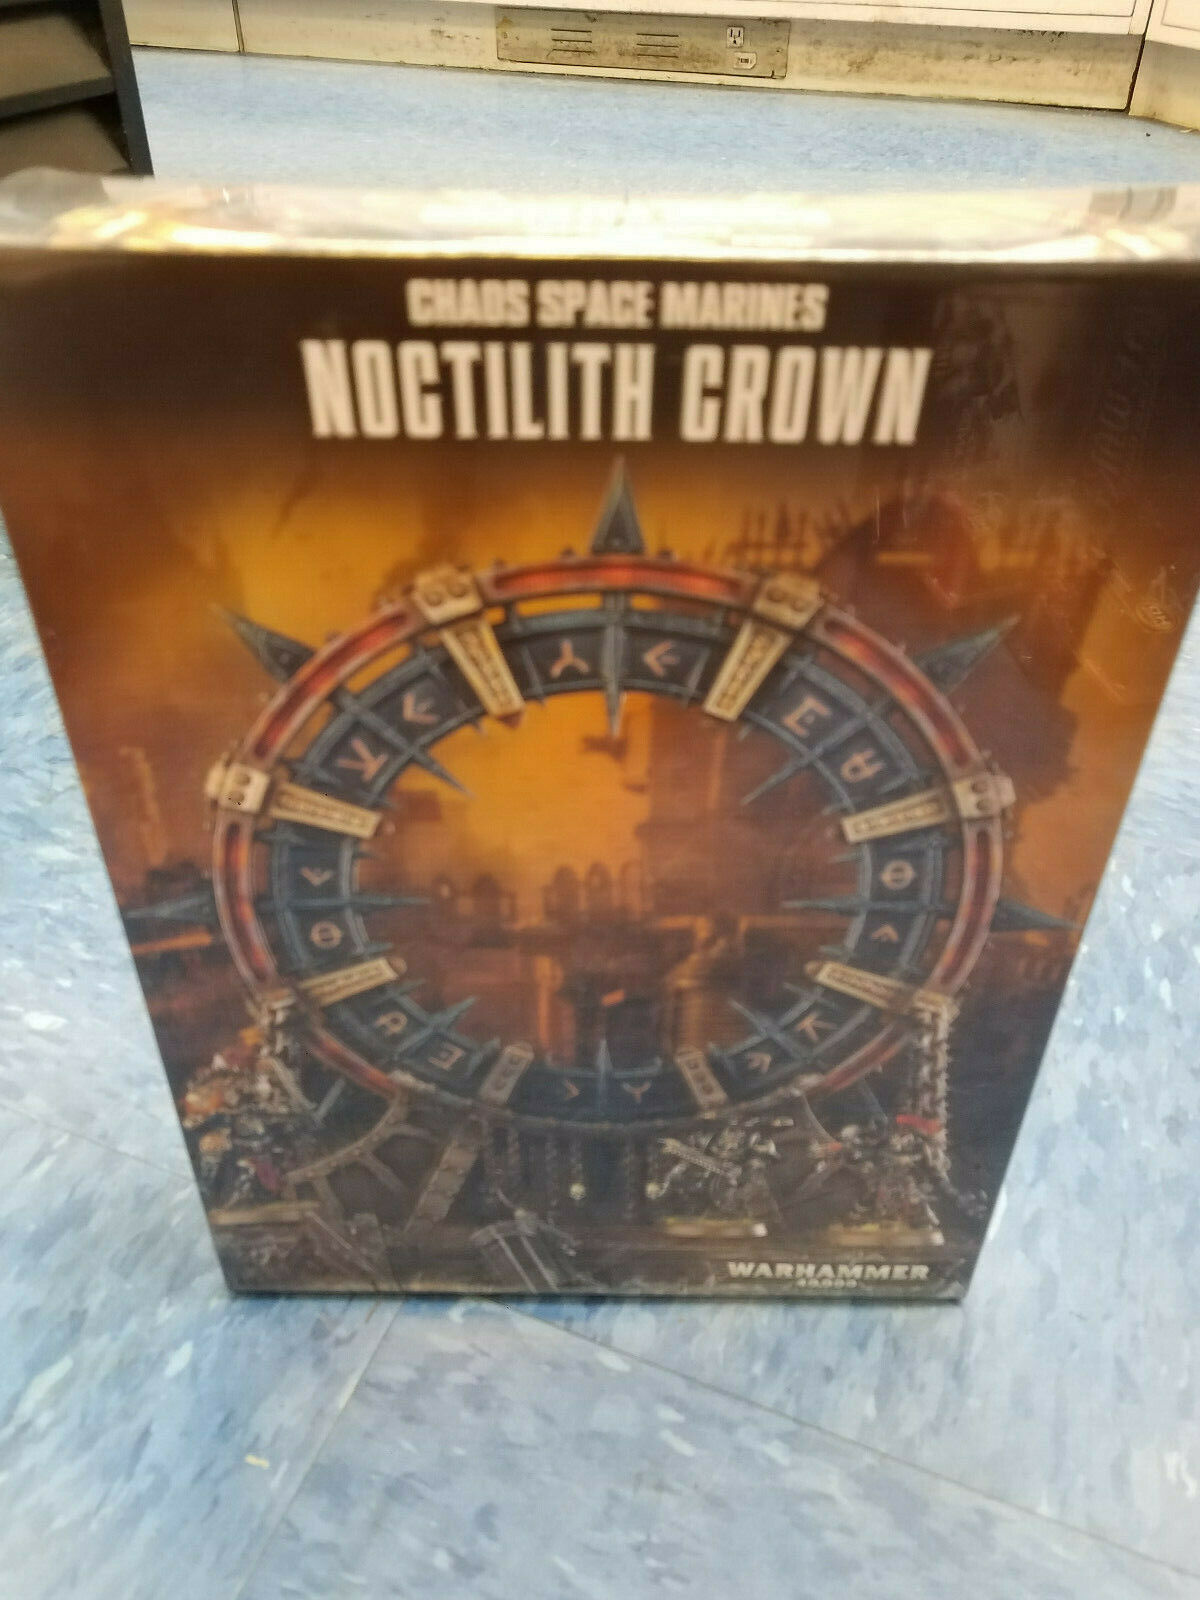 Noctilith Crown Chaos Space Marines Warhammer 40k 40,000 Games Workhop